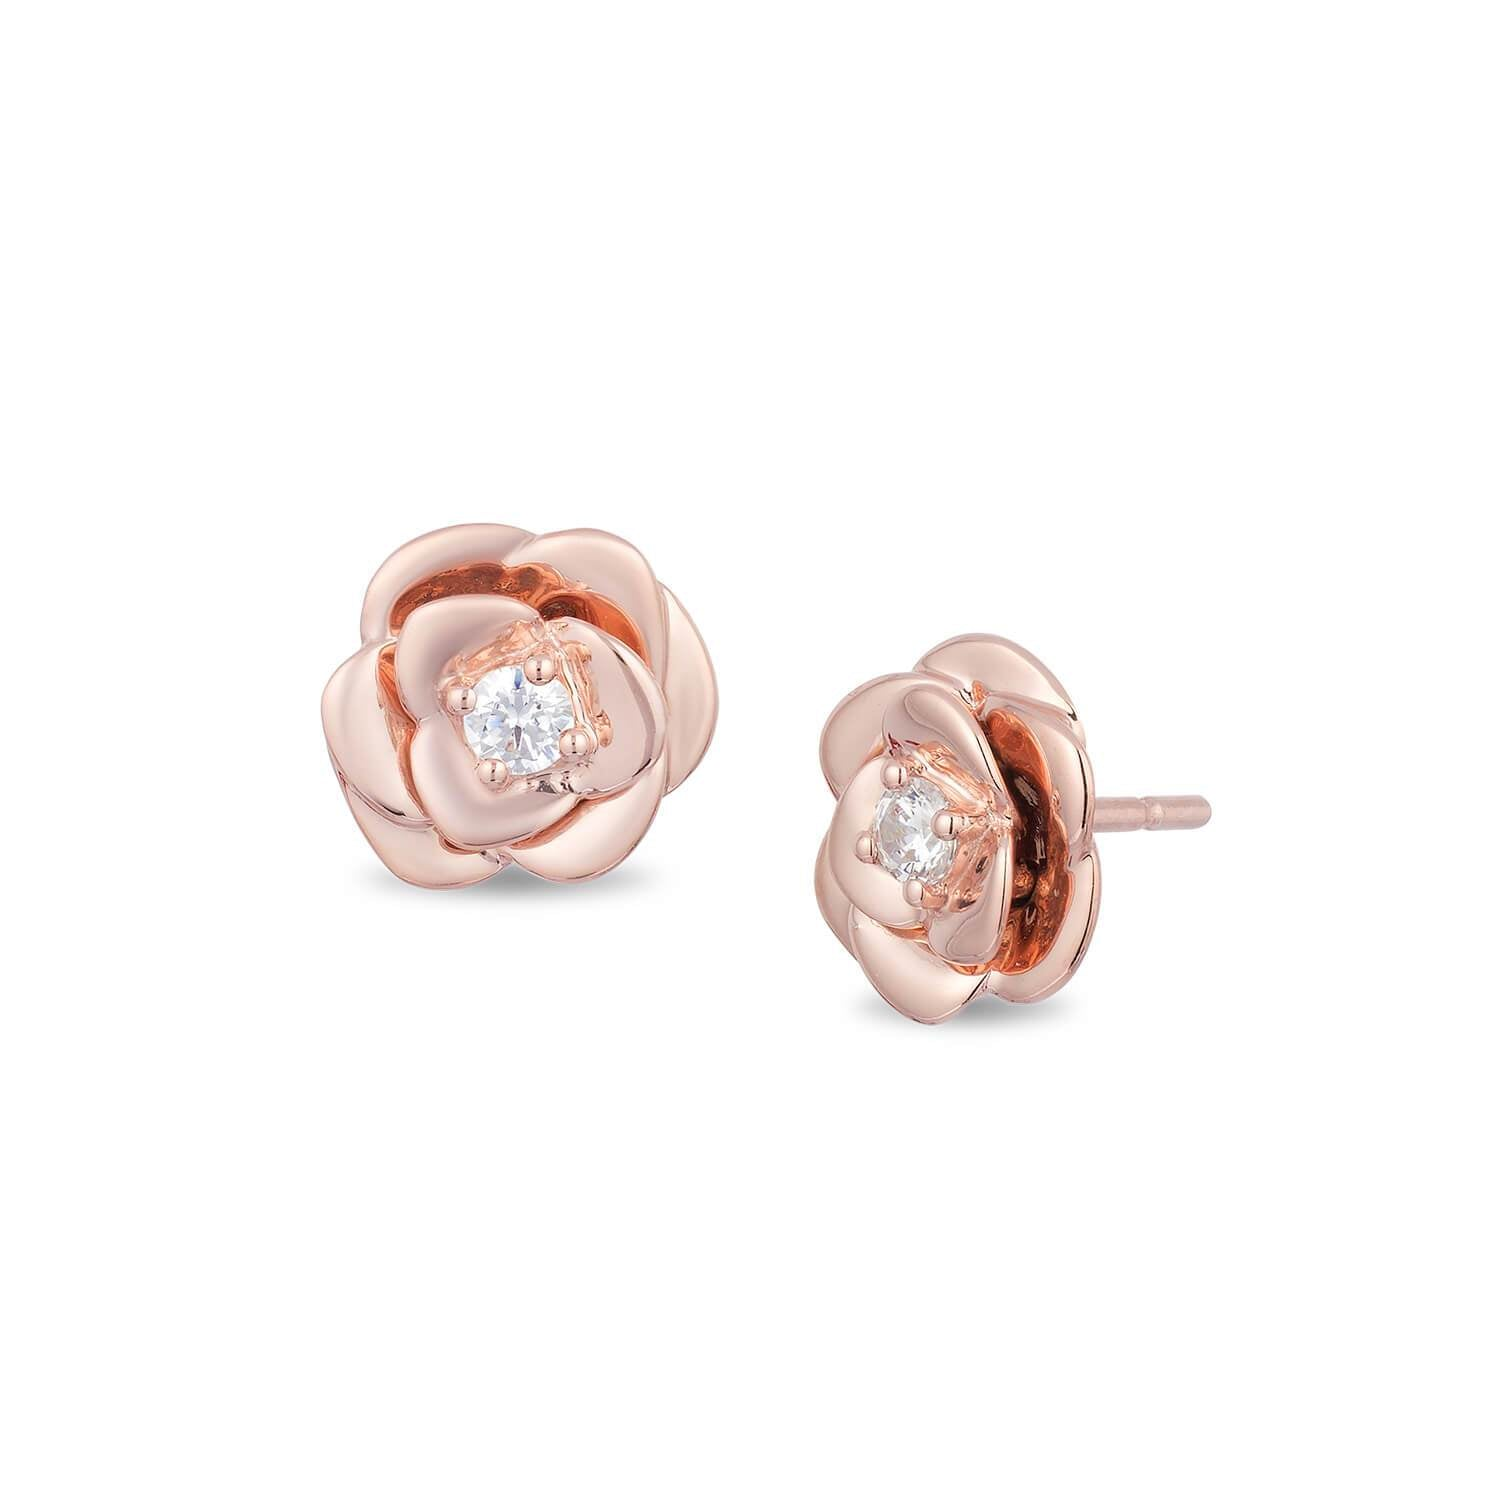 enchanted_disney-belle_stud_earrings-9k_rose_gold_0.10CTTW_1